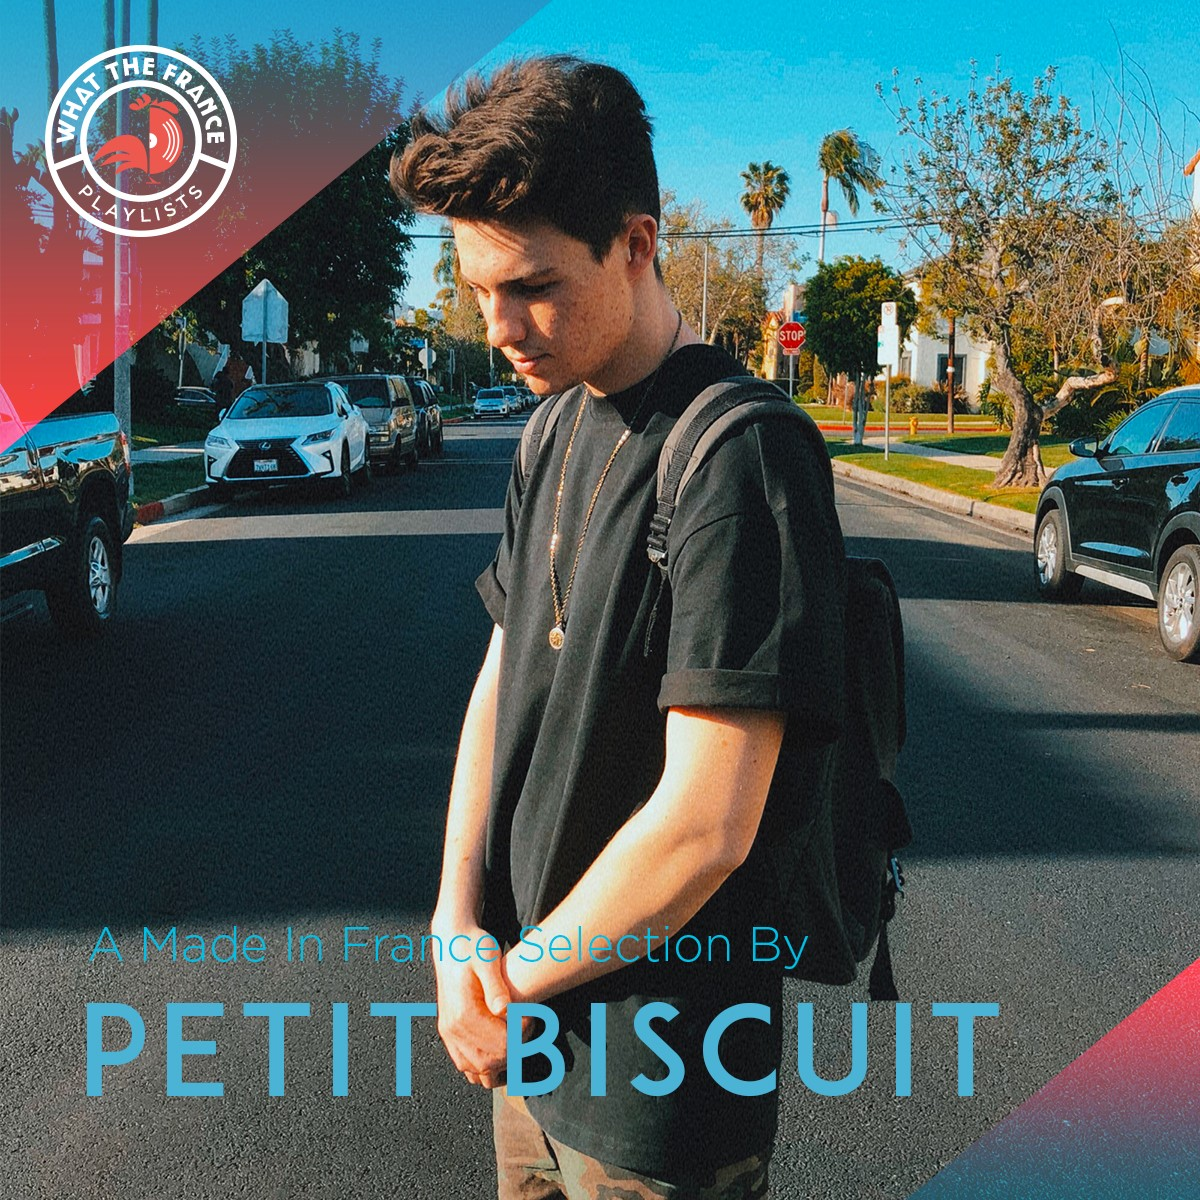 World | A Made in France Selection by Petit Biscuit - Le